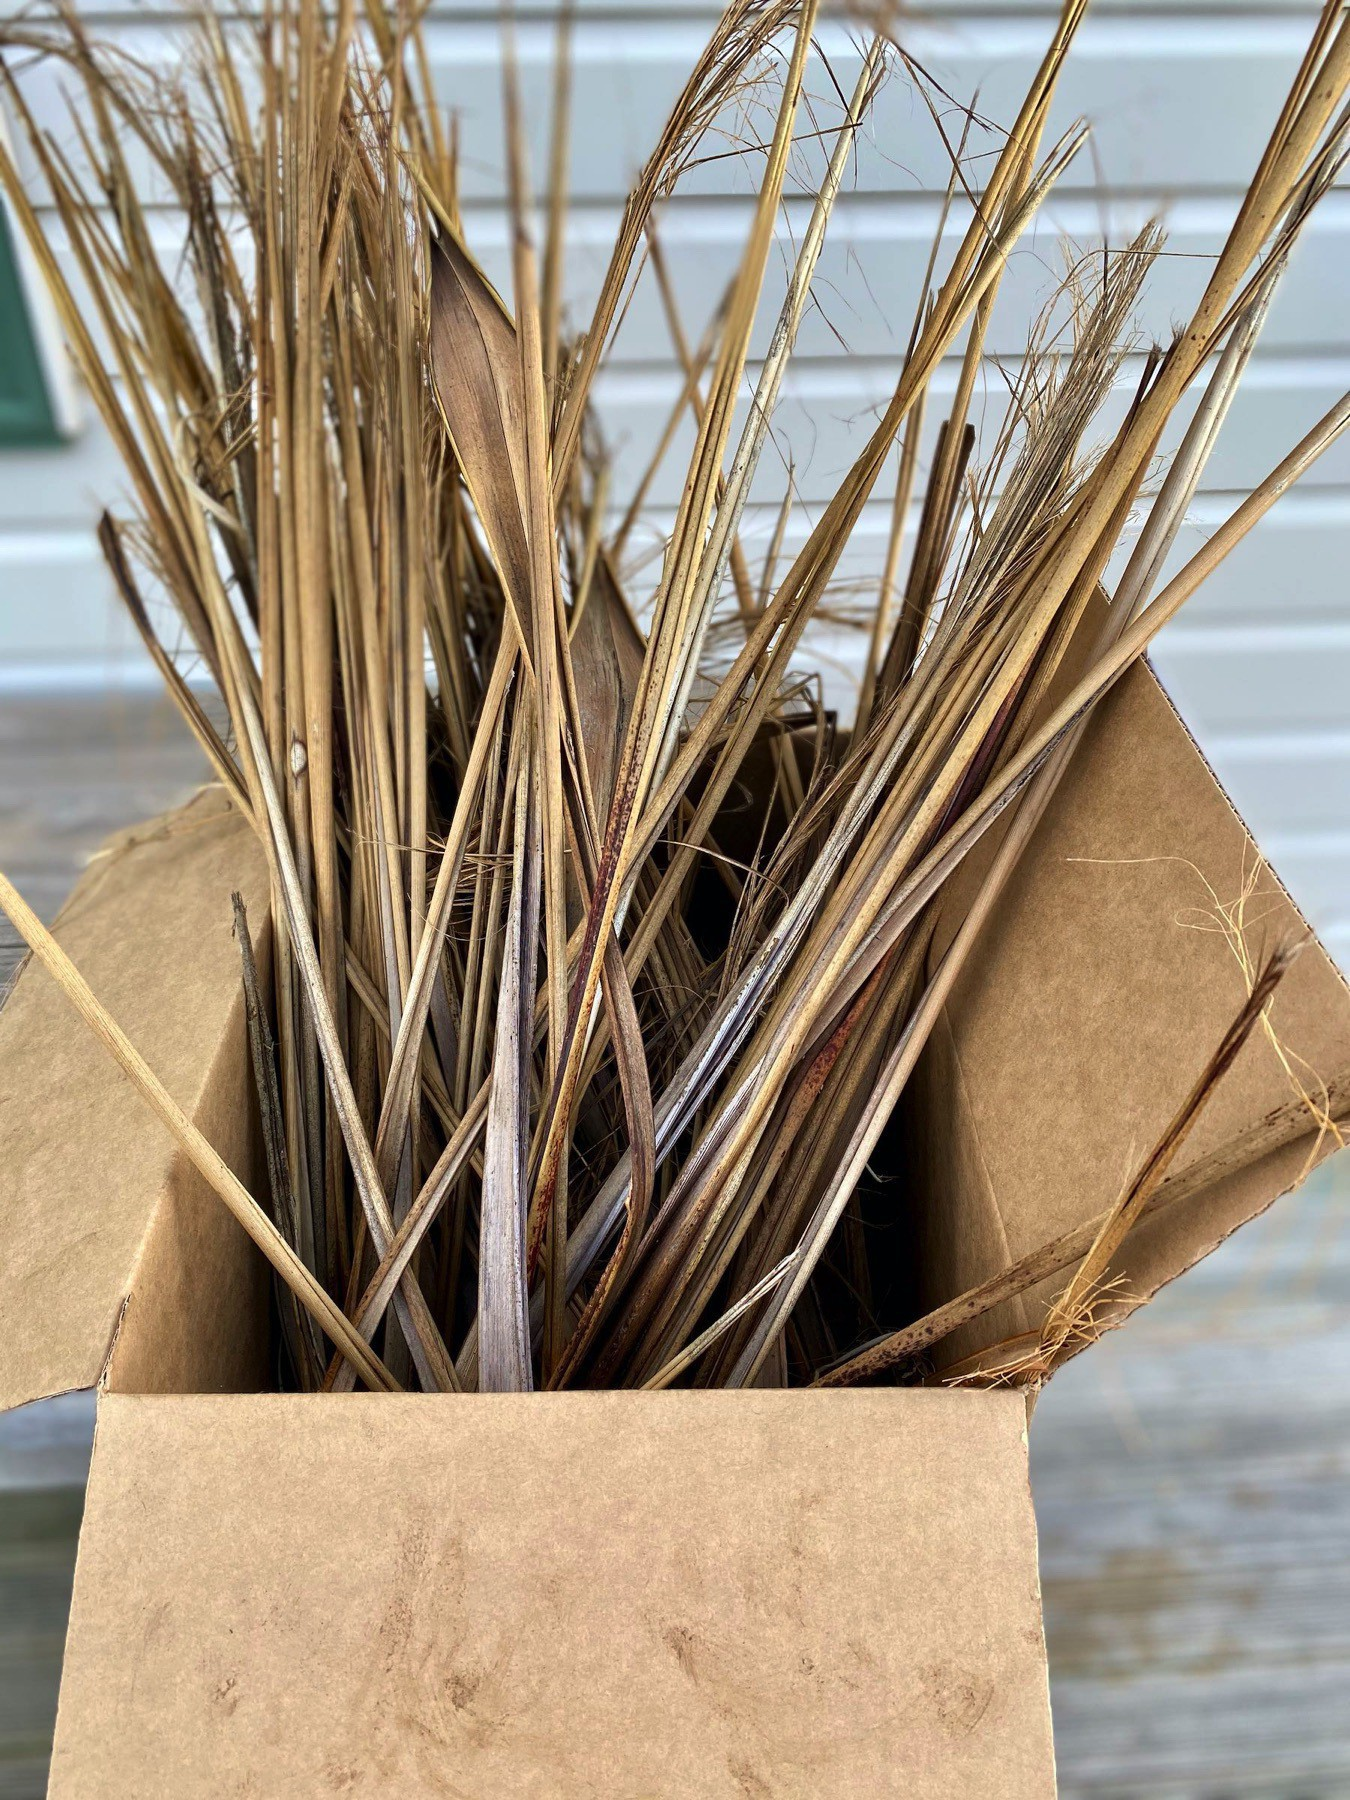 A box of dry flax leaves.